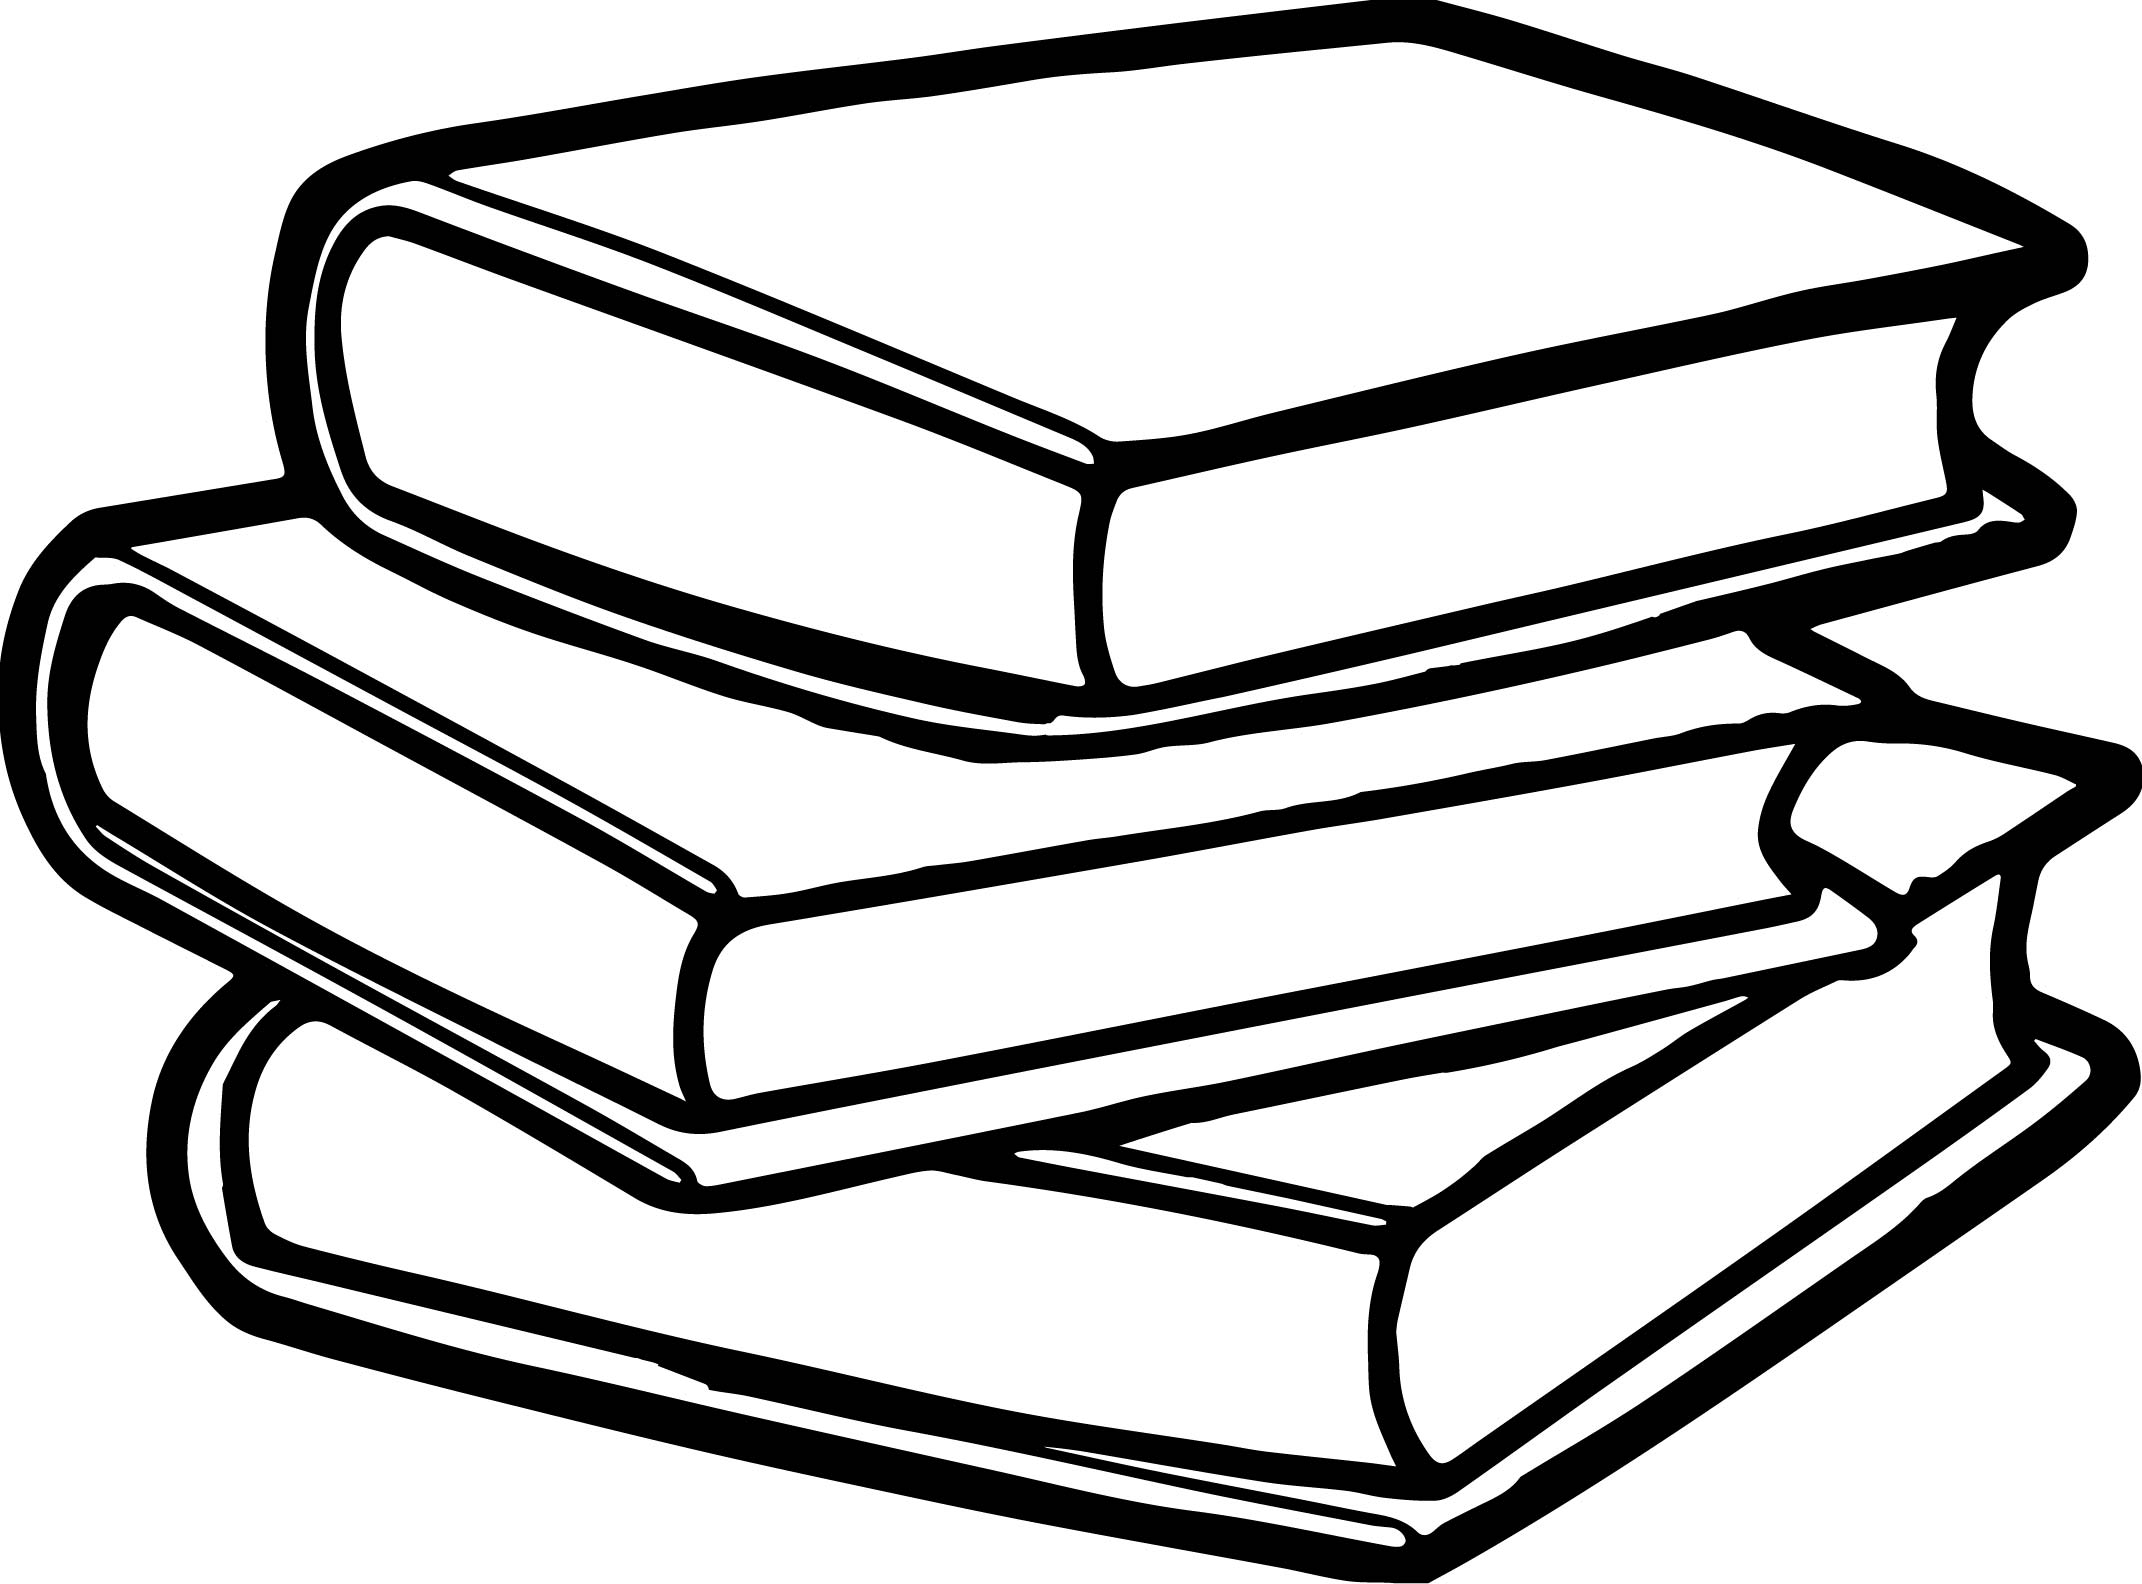 book coloring pages library coloring pages classroom doodles pages coloring book